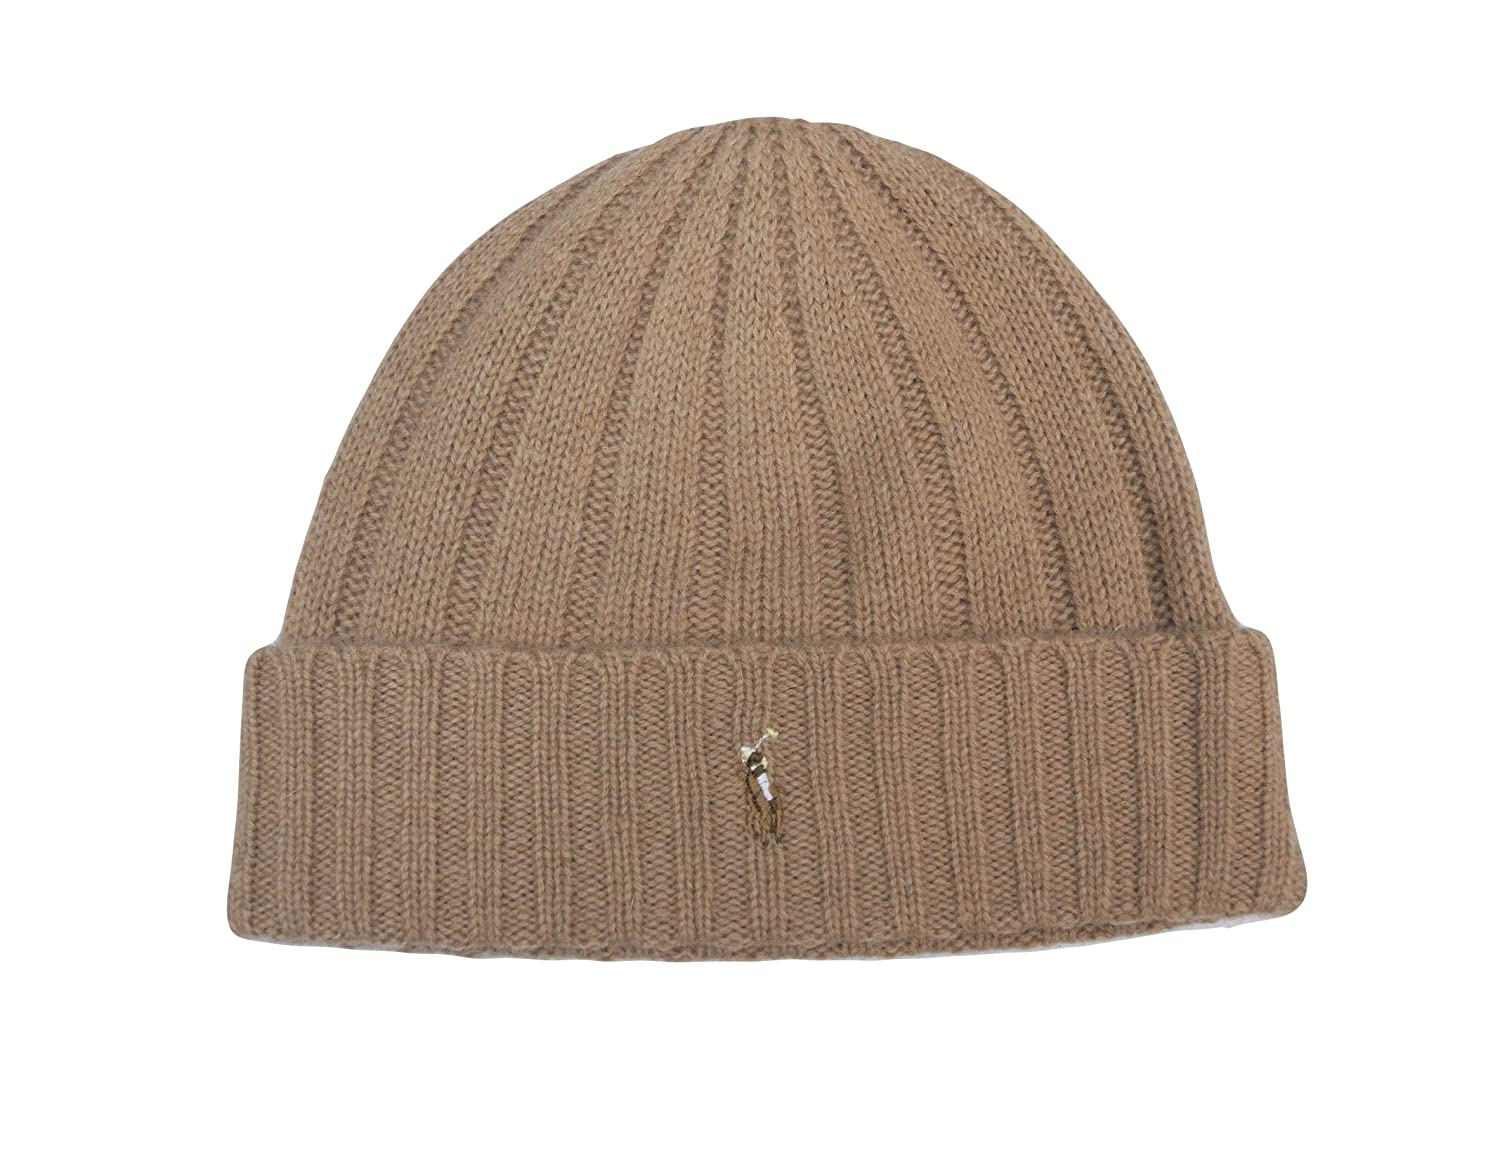 267a9c03b24 Amazon.com  Polo Ralph Lauren Lambs Wool Beanie Hat Cap  Sports   Outdoors